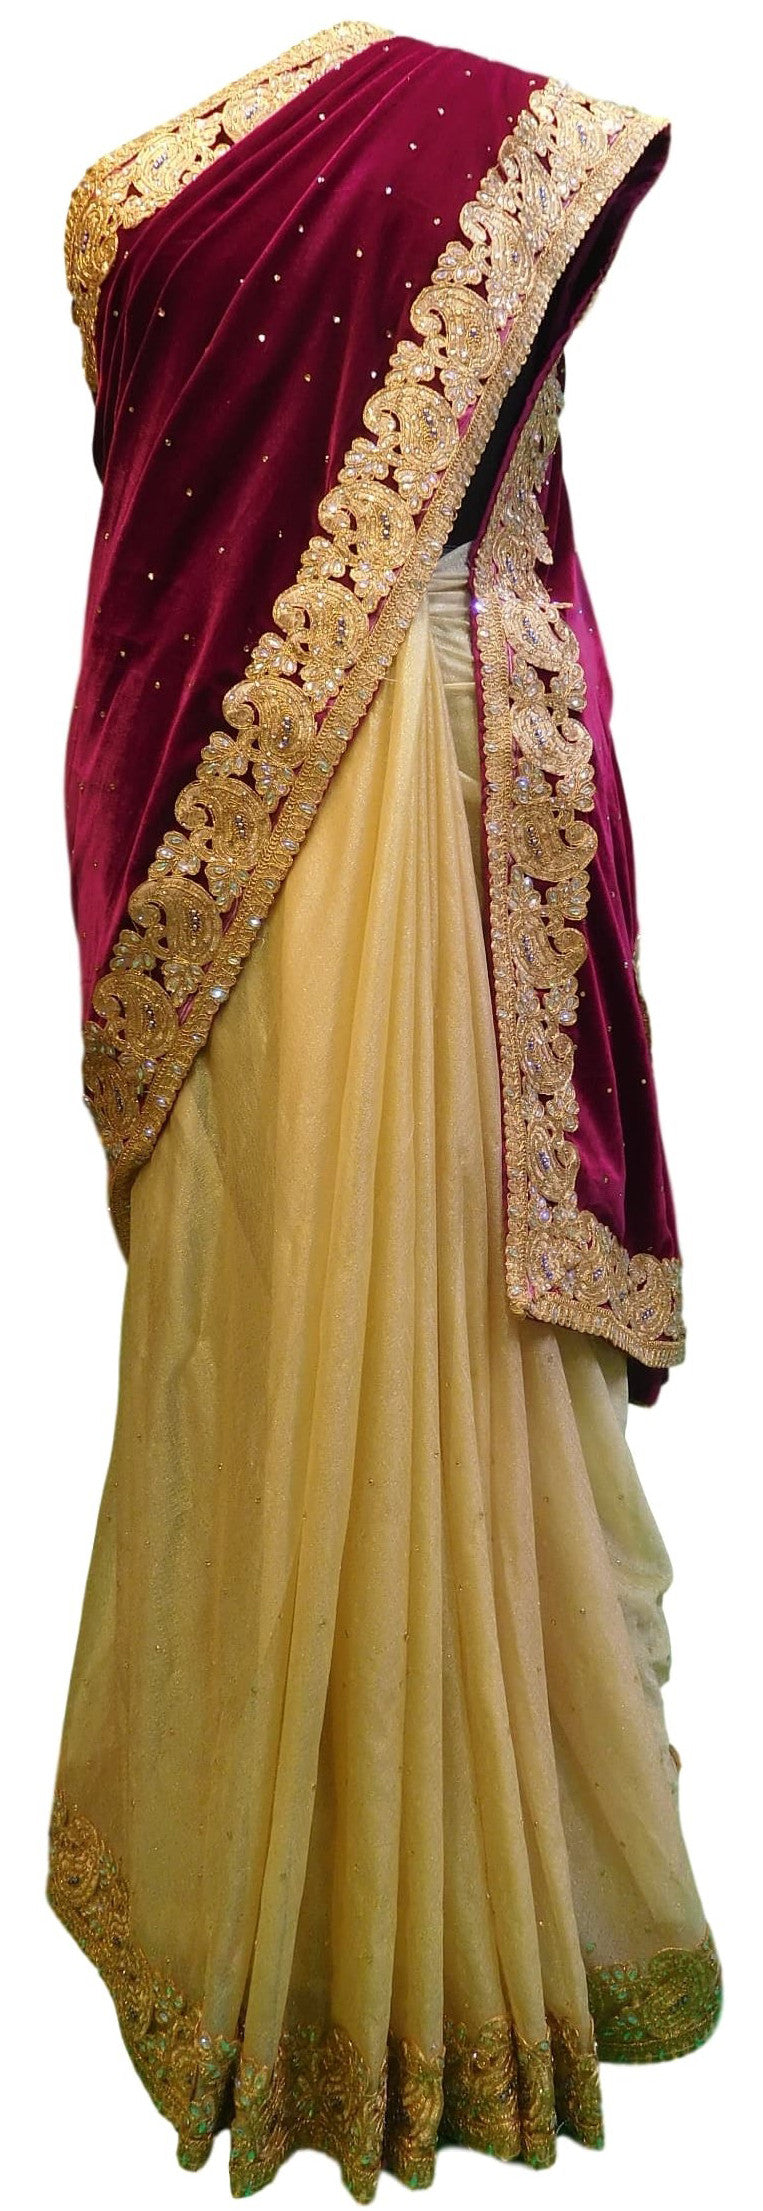 Wine & Cream Designer Velvet & Lycra Hand Embroidery Stone Border Sari Saree